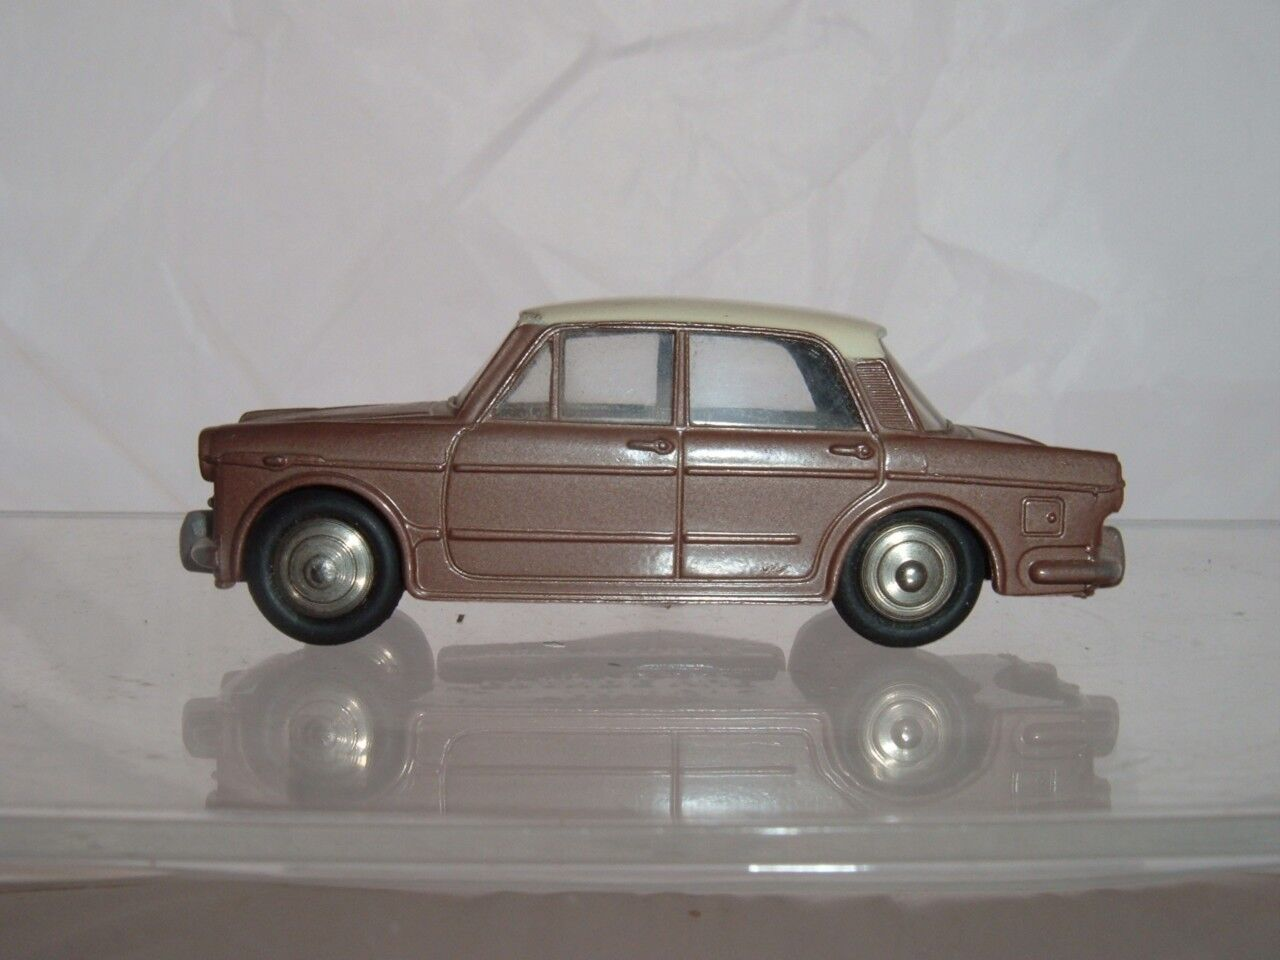 DINKY TOY FRANCE 531 FIAT 1200 IN USED ORIGINAL CONDITION A NICE EXAMPLE VINTAGE